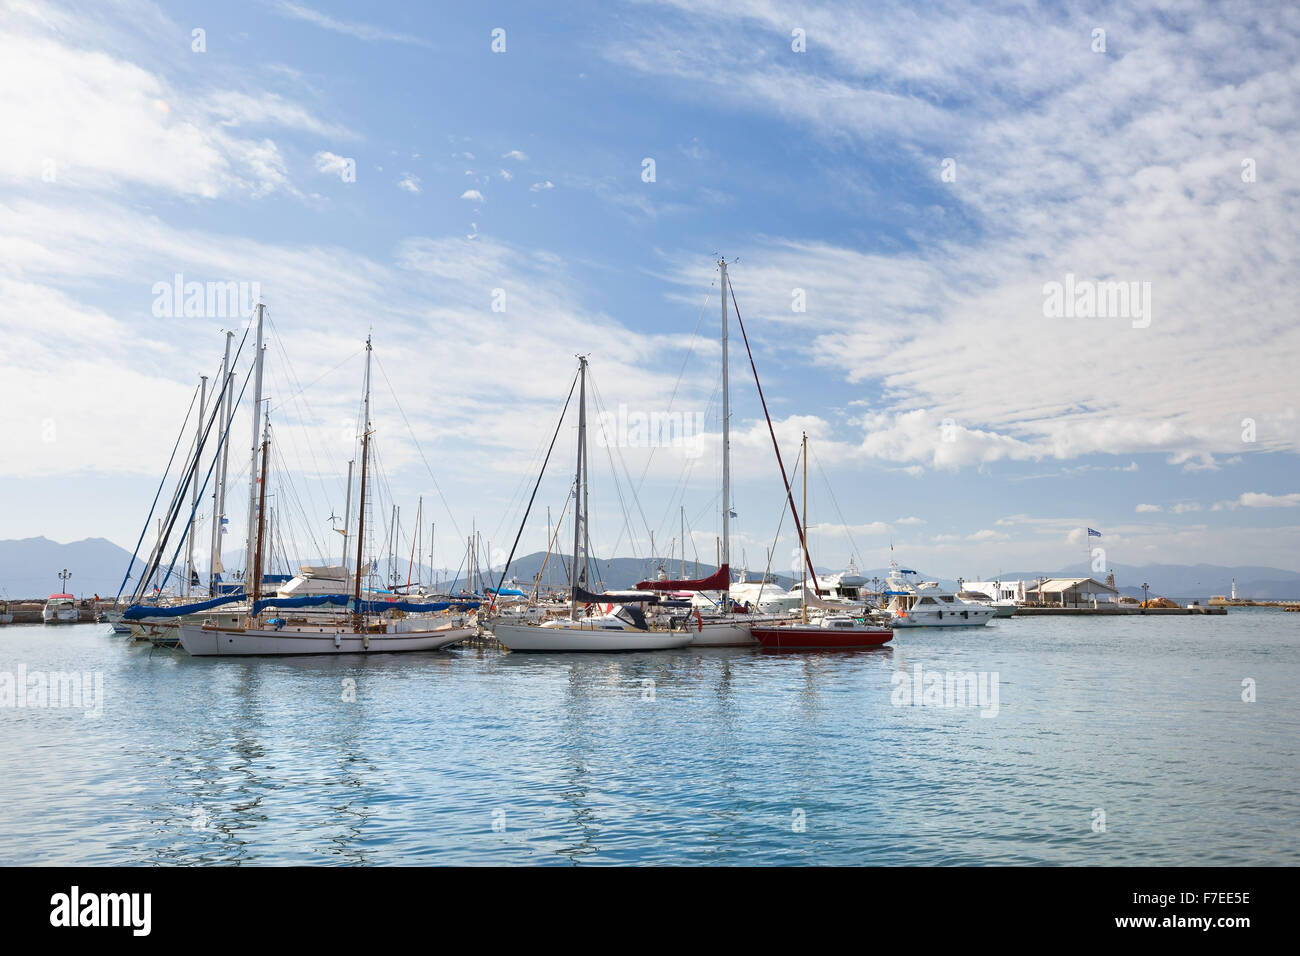 View of sail boats  in the harbour of Aegina island, Greece - Stock Image